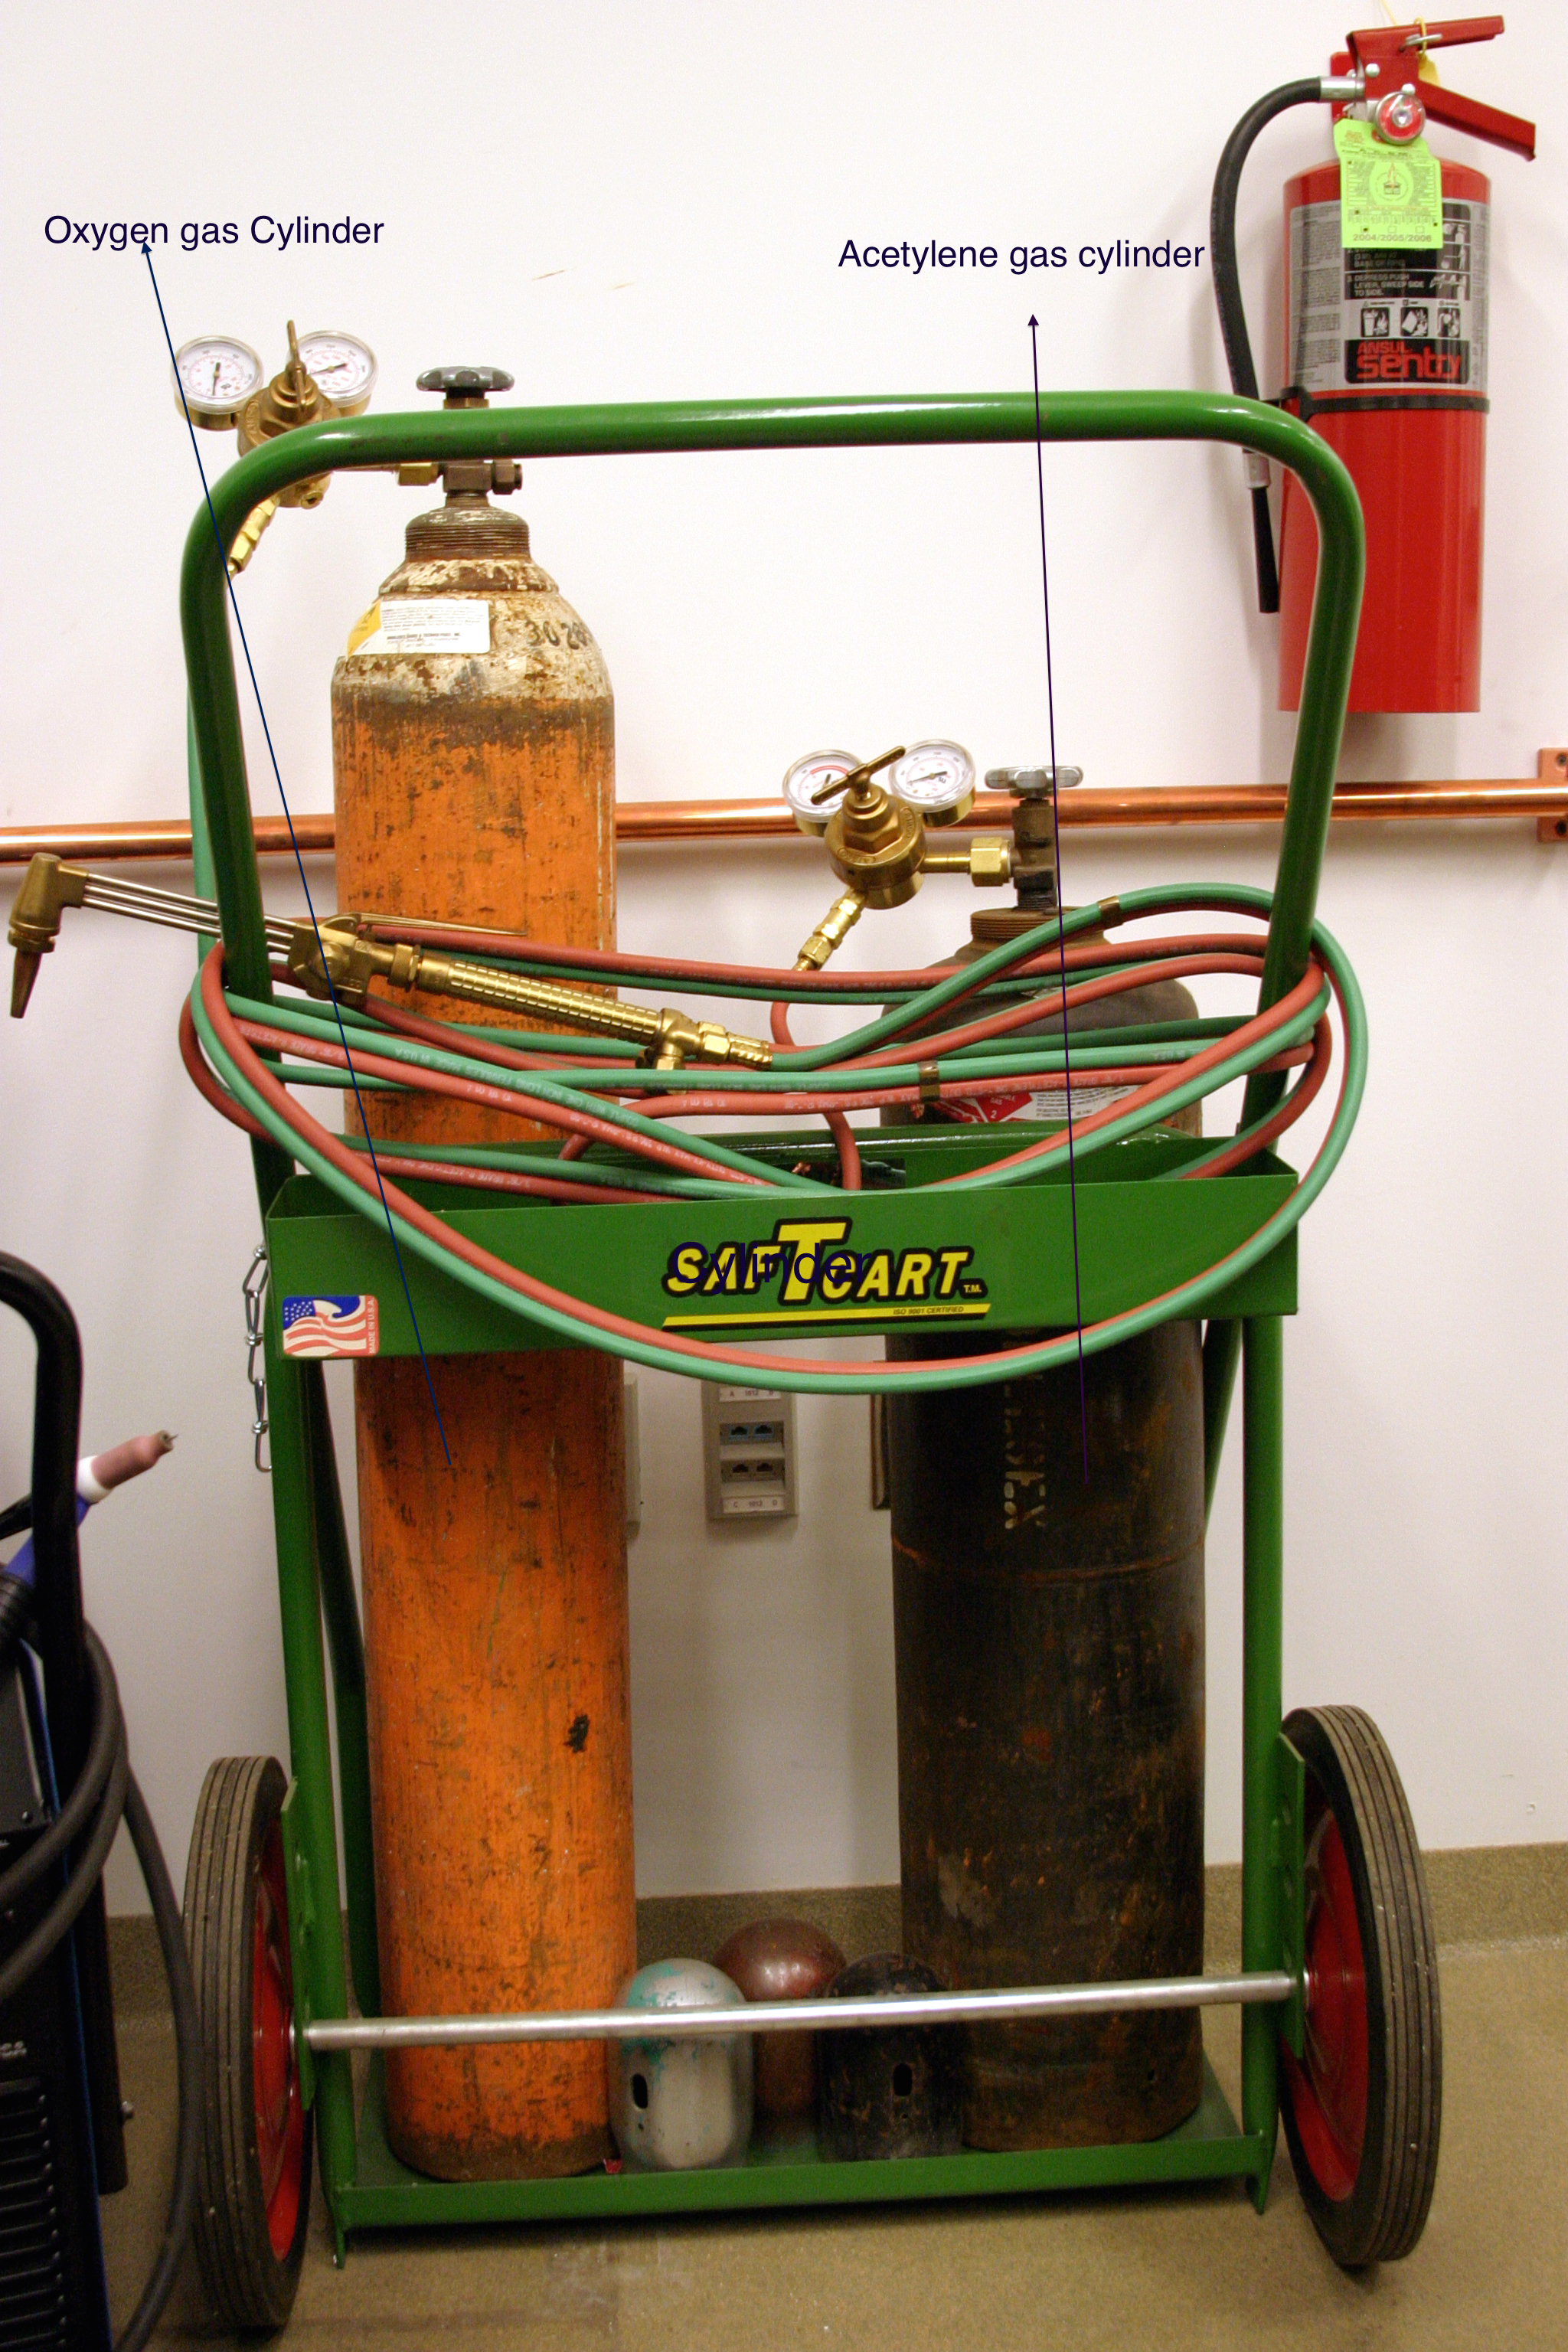 oxygen and acetylene gas set